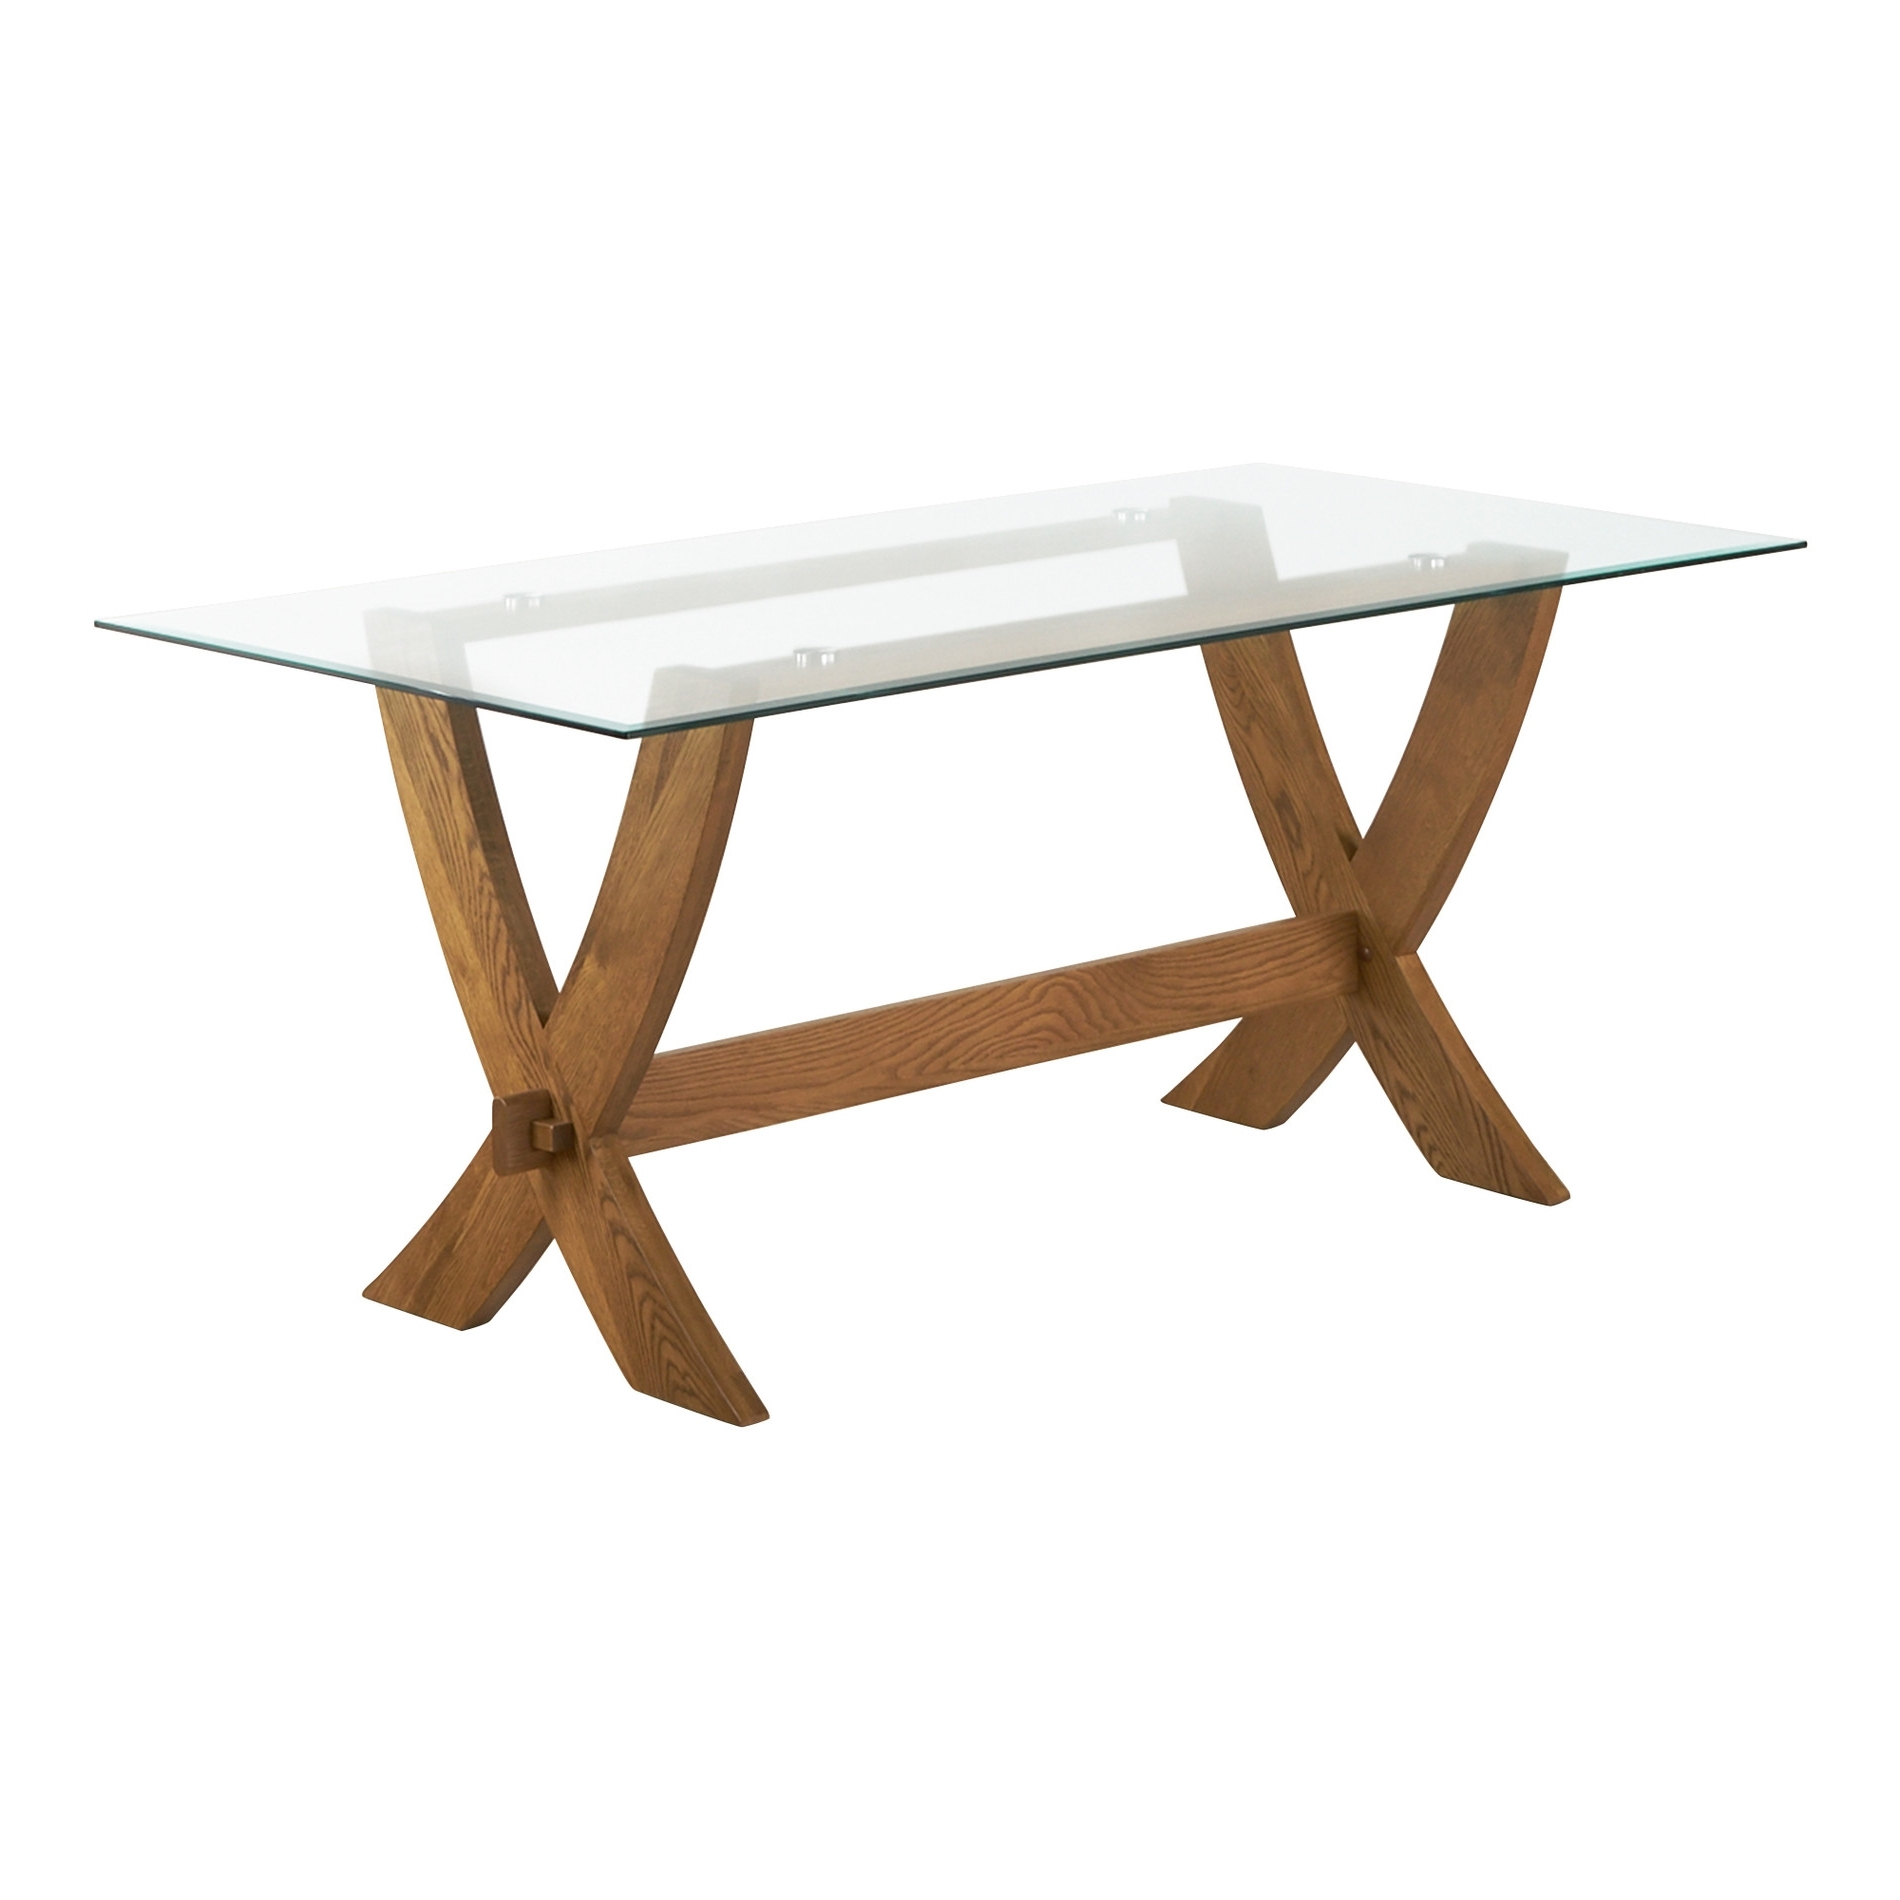 Glass Top Oak Dining Tables With Widely Used Reflection Glass Top Dining Table With Solid Oak Crossed Legs (View 22 of 25)